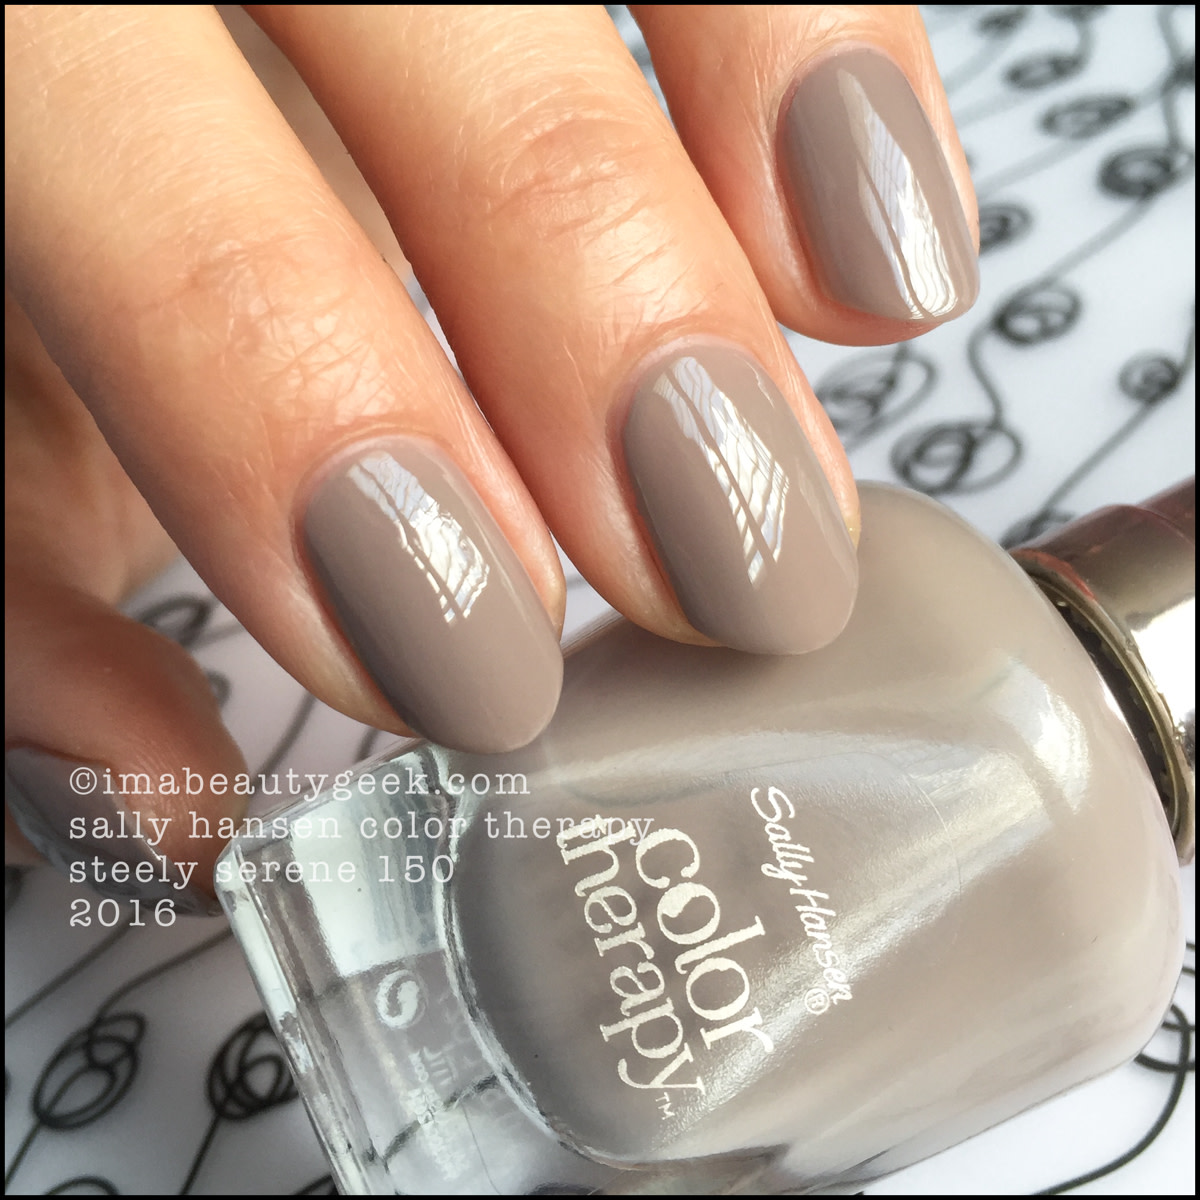 Sally Hansen Color Therapy Steely Serene 150_Sally Hansen Color Therapy Nail Polish Review Swatches